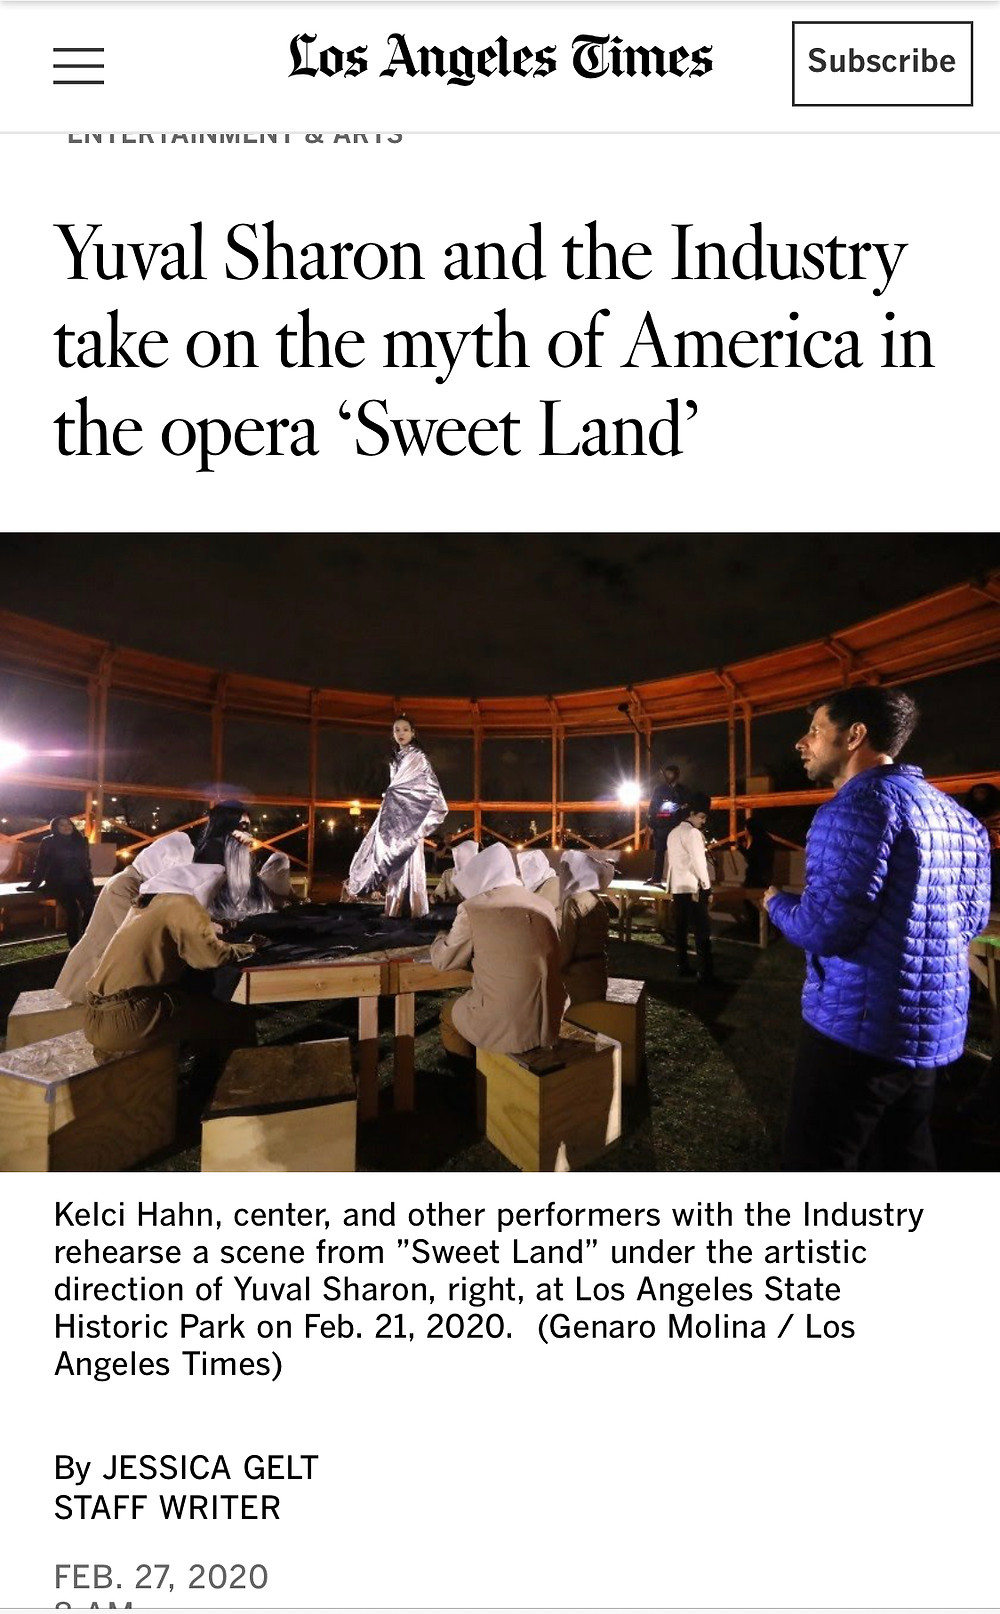 Kelci Hahn, LA Times, The Industry Opera, Sweet Land